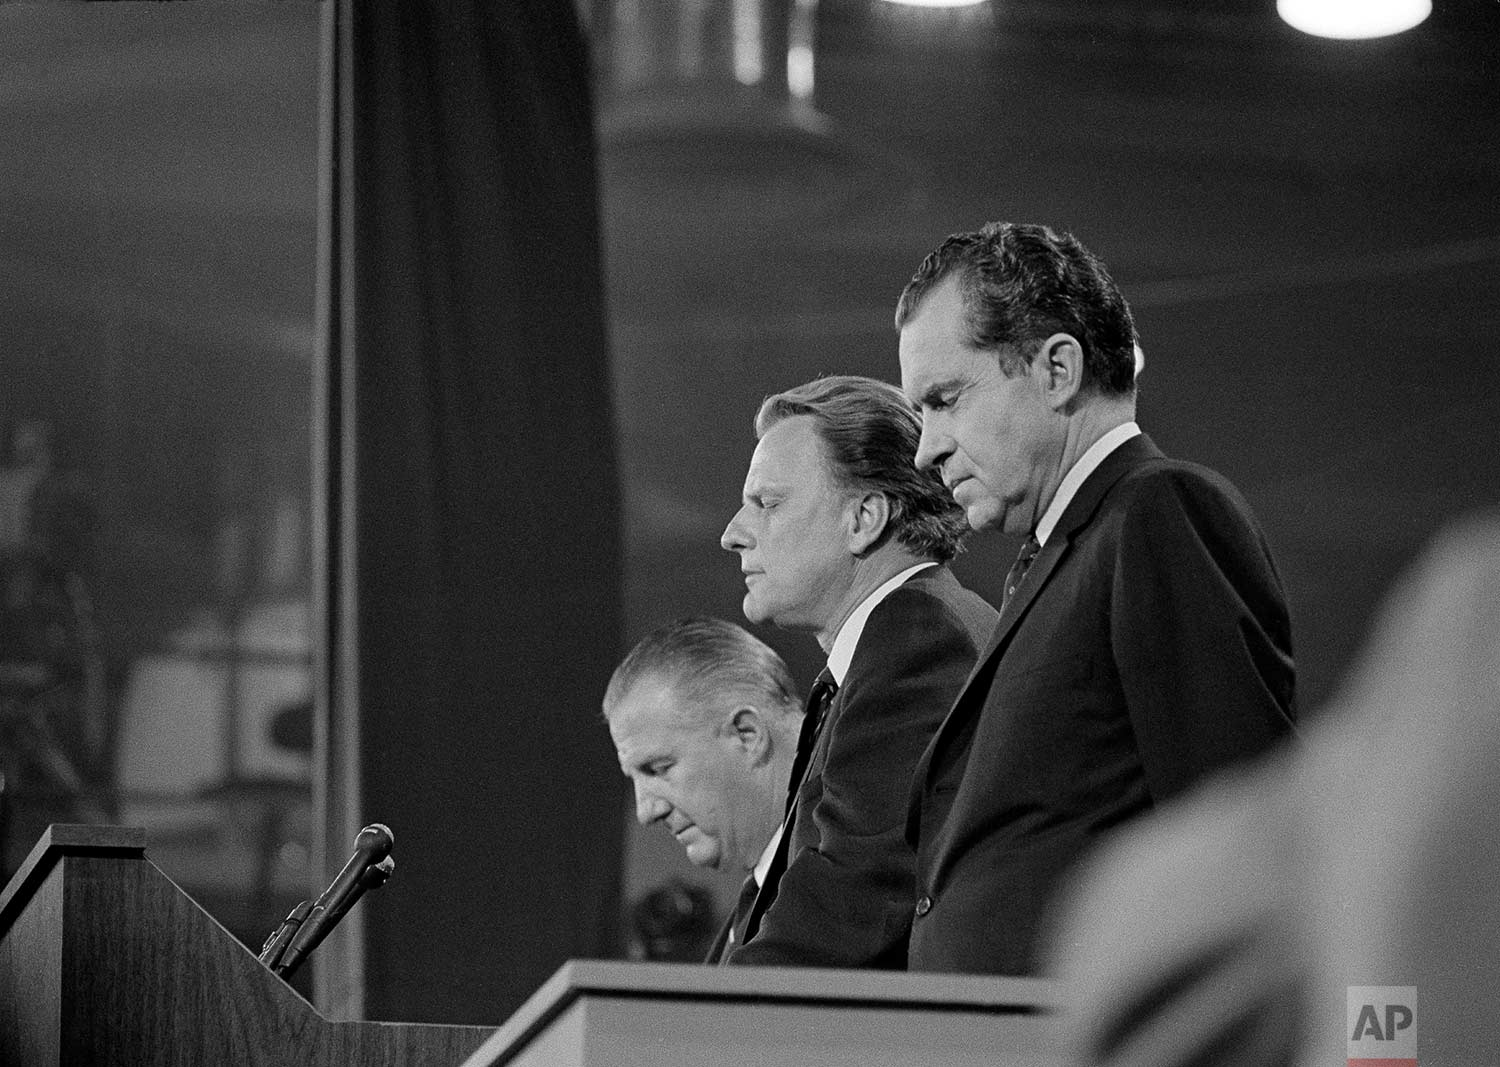 Dr. Billy Graham gives the closing benediction at wind-up session of the Republican National Convention in Miami, Fla., Aug. 8, 1968. Left to right is Maryland Gov. Spiro T. Agnew, Graham and Richard M. Nixon. (AP Photo)